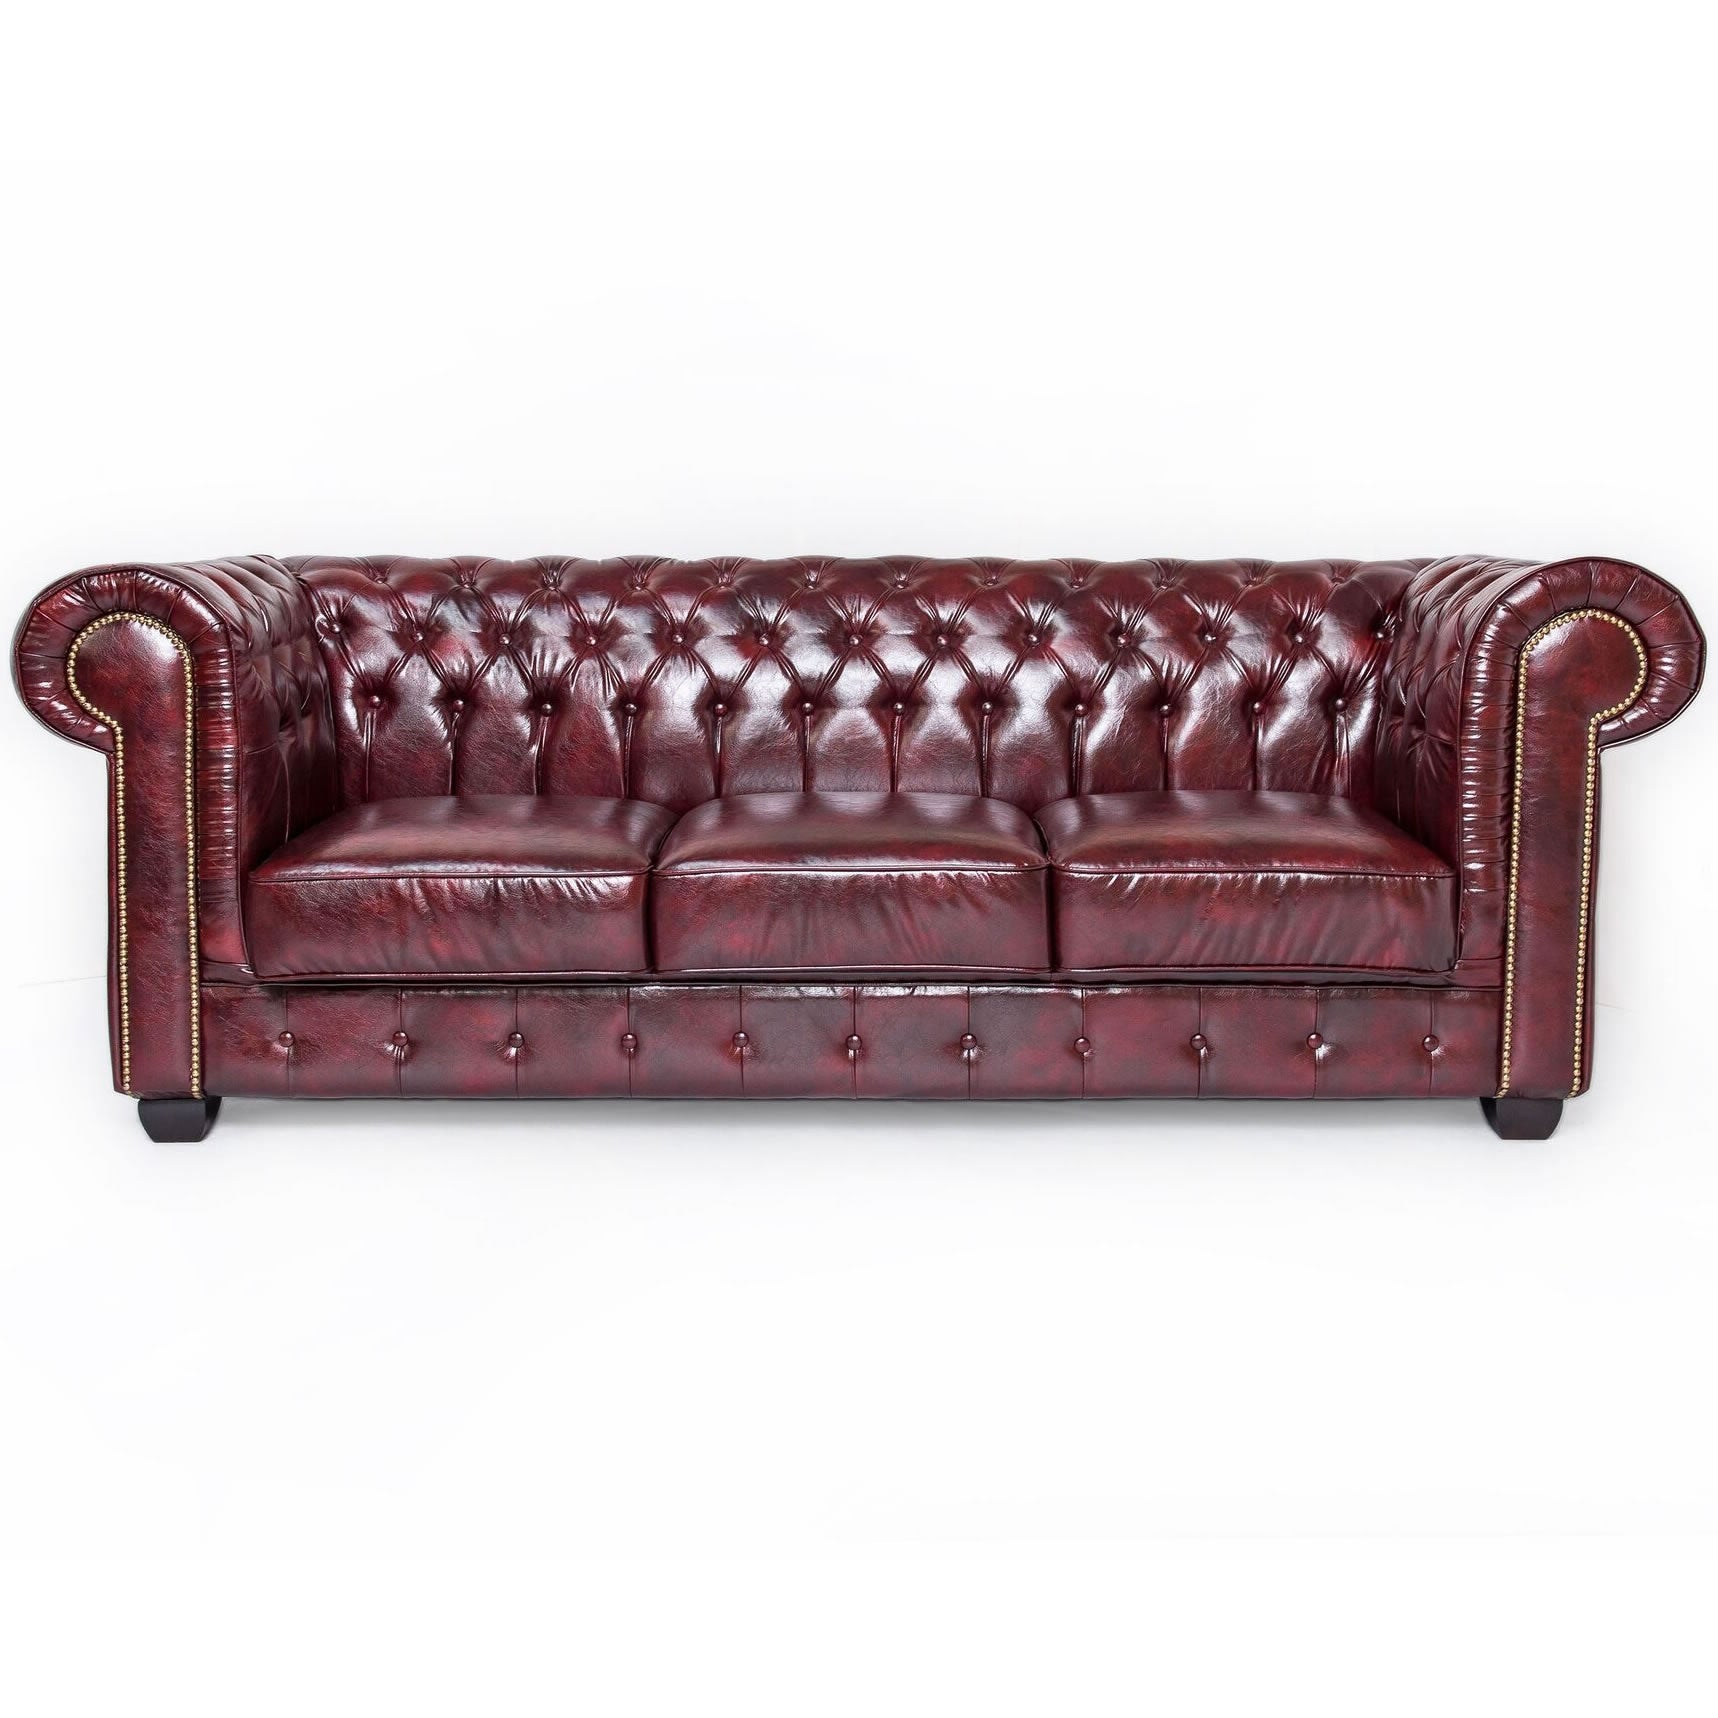 Oxblood Red Leather Chesterfield 3 Seat Sofa - SD061